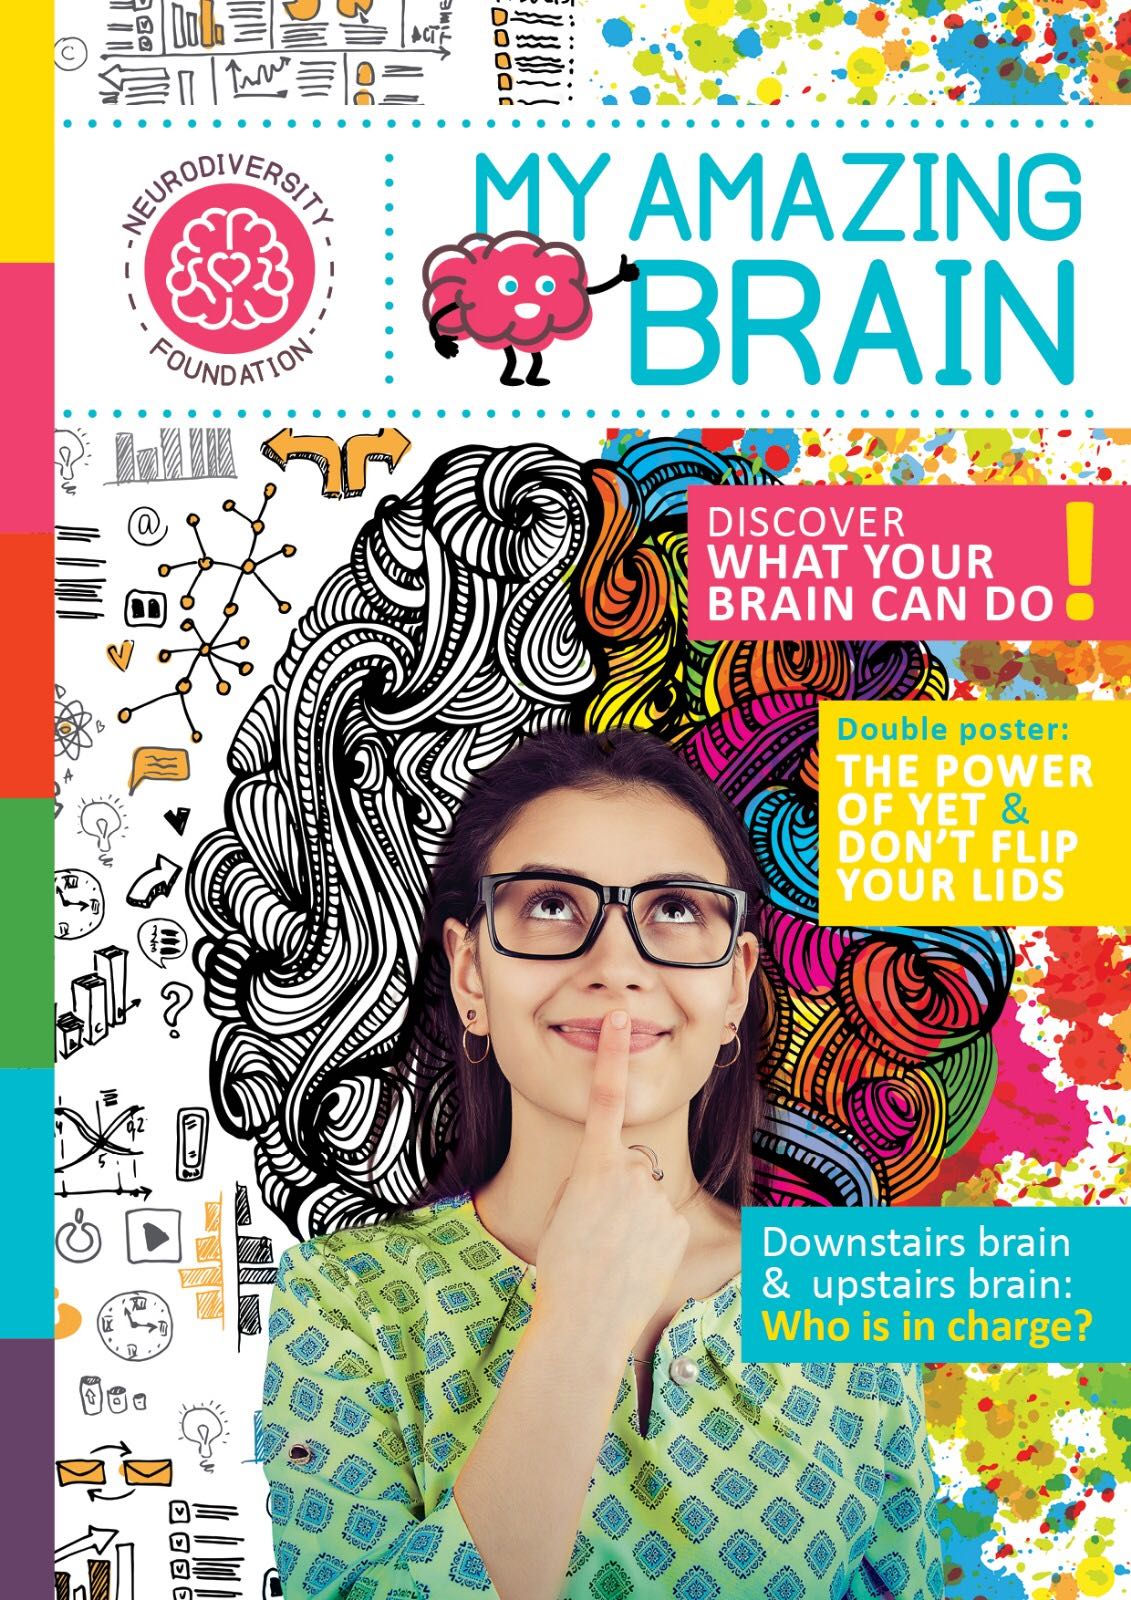 My Amazing Brain Magazine, made by Lana, Eleonora and Saskia